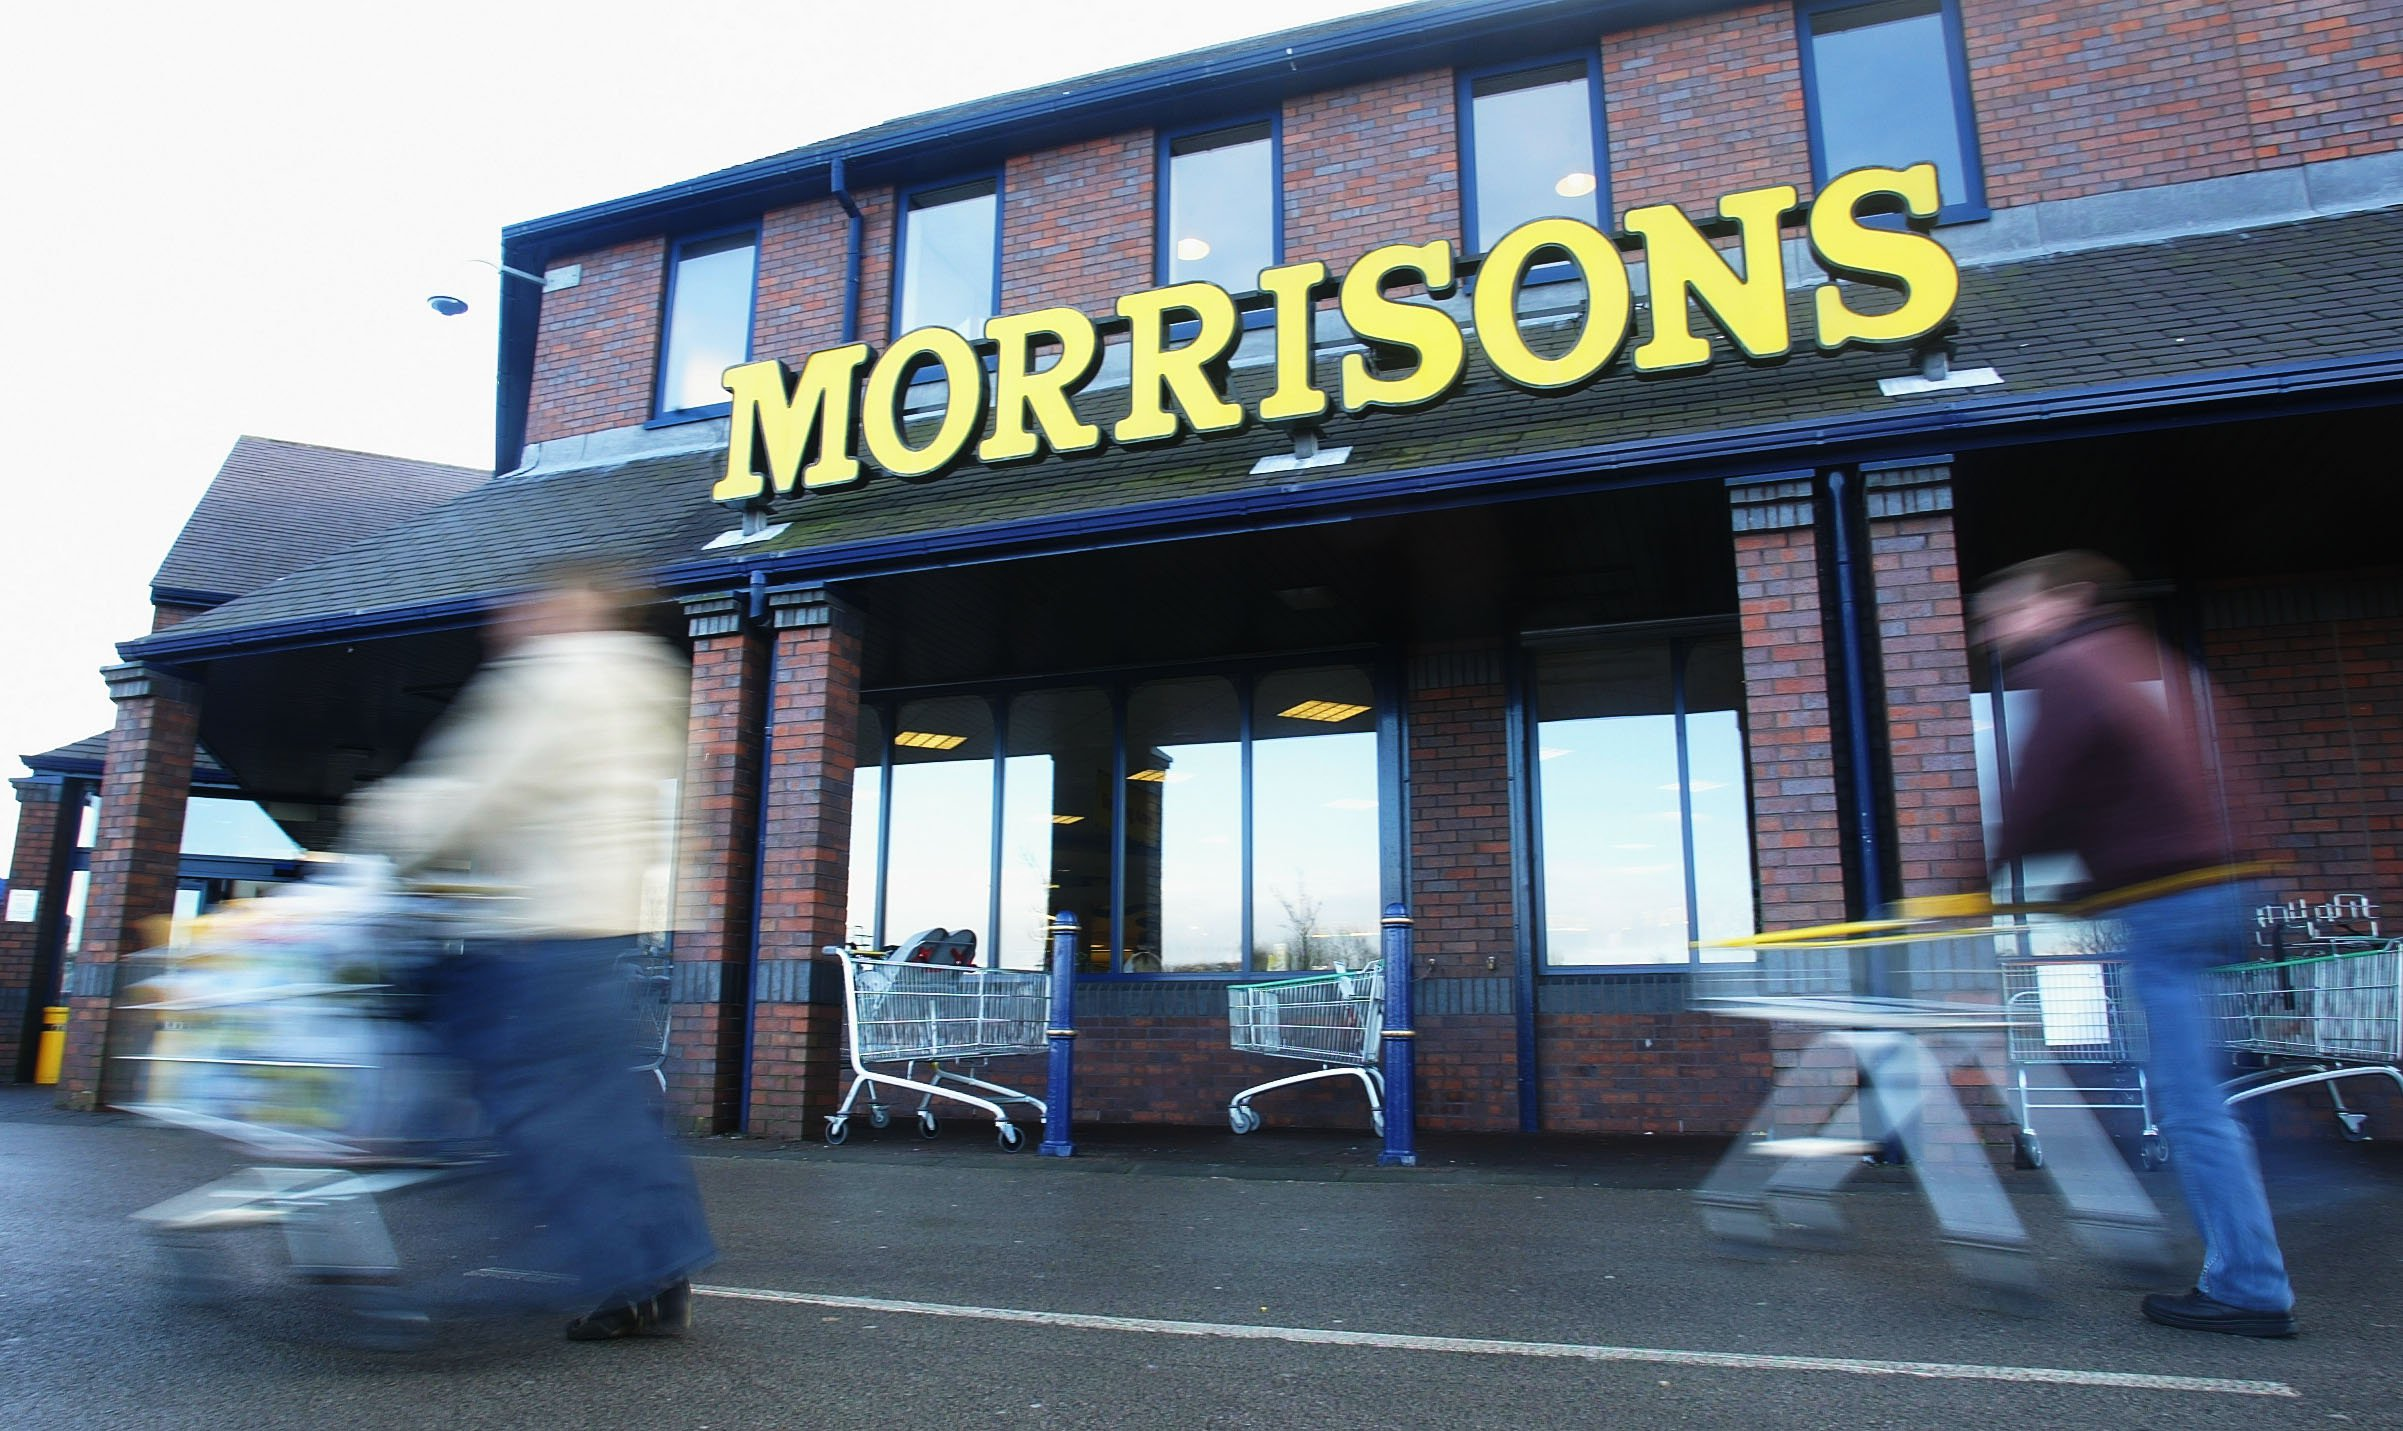 ROCHDALE - JANUARY 9: A shopper pushes her transport outward a Morrisons supermarket Jan 9, 2003 in Rochdale, Lancashire. The mid-size British supermarket chain, Morrisons, announced a bid to pass opposition Safeway in a 2.9 billion bruise understanding that would mix a organisation with 589 stores and a 16 percent marketplace share. (Photo by Laurence Griffiths/Getty Images)